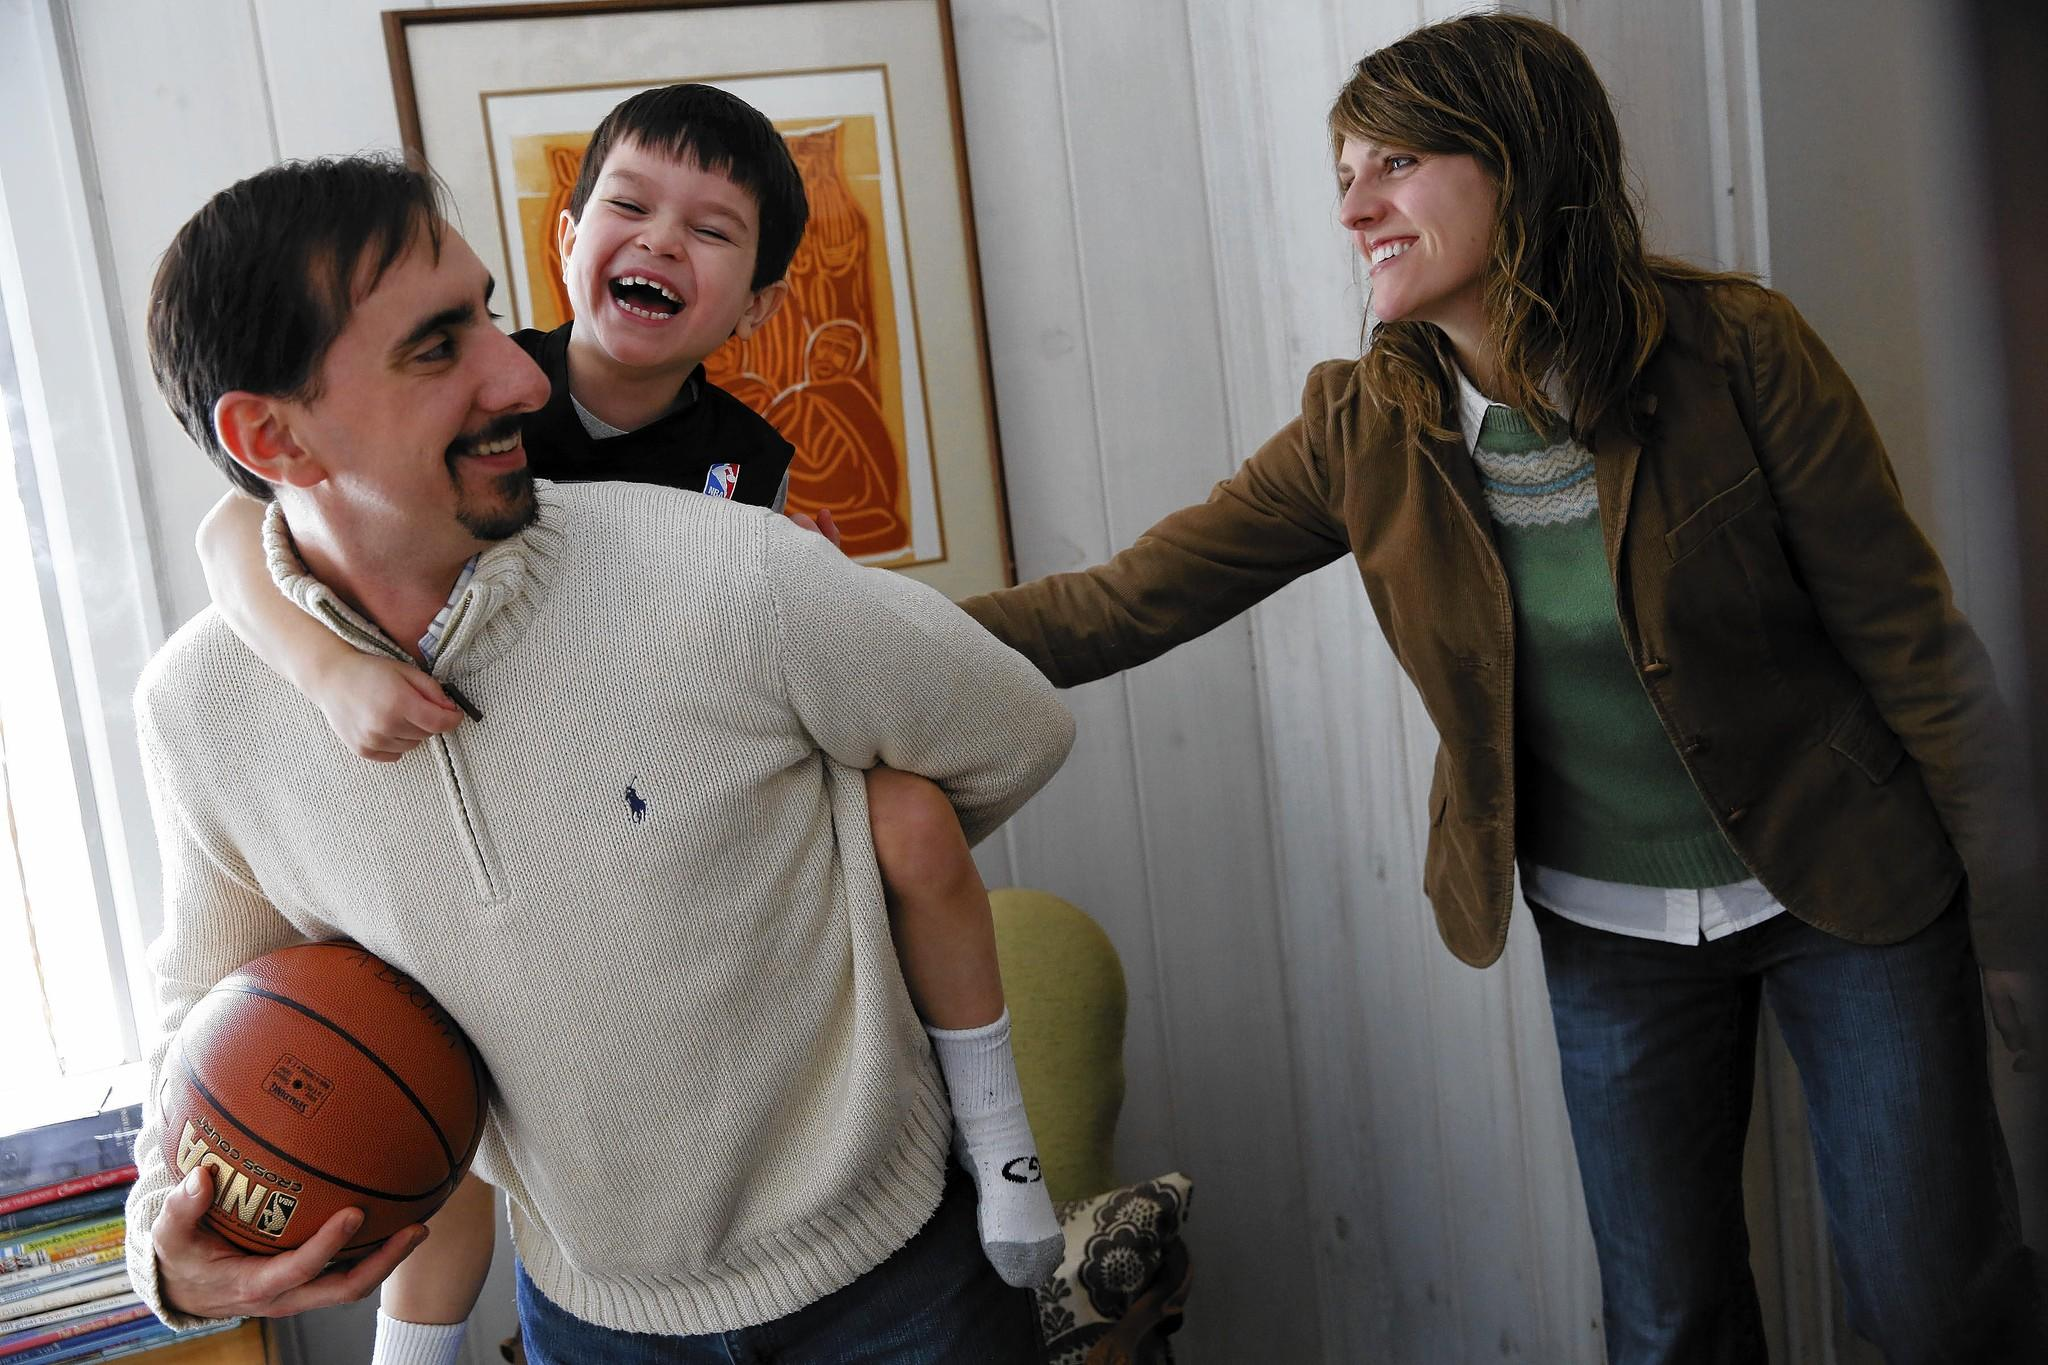 Garrett and Heather Boehm spend some time with their adoptive son Alek, 7, at their Barrington home. The Boehms want to adopt another child from Russia, 2-year-old Anna, but the process was arrested by Russia's decision to ban adoptions by U.S. parents.